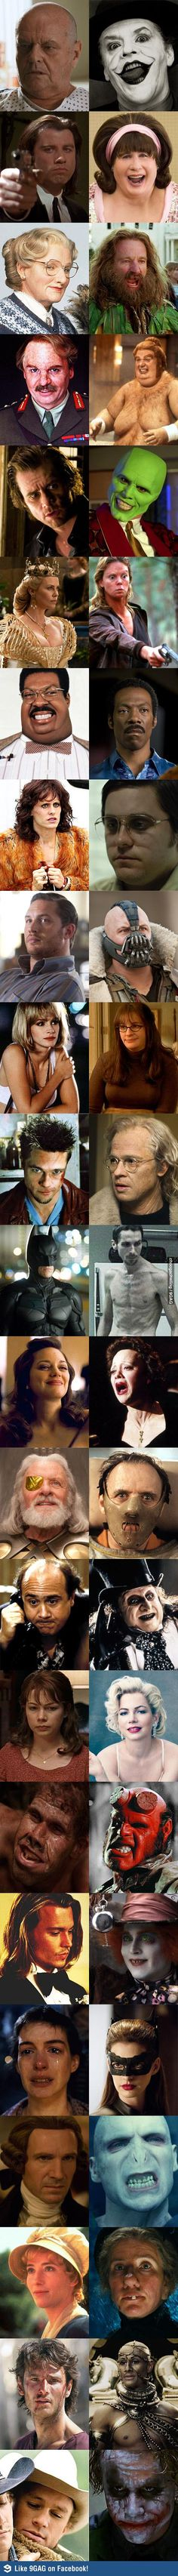 Incredible transformations by some of the best actors.